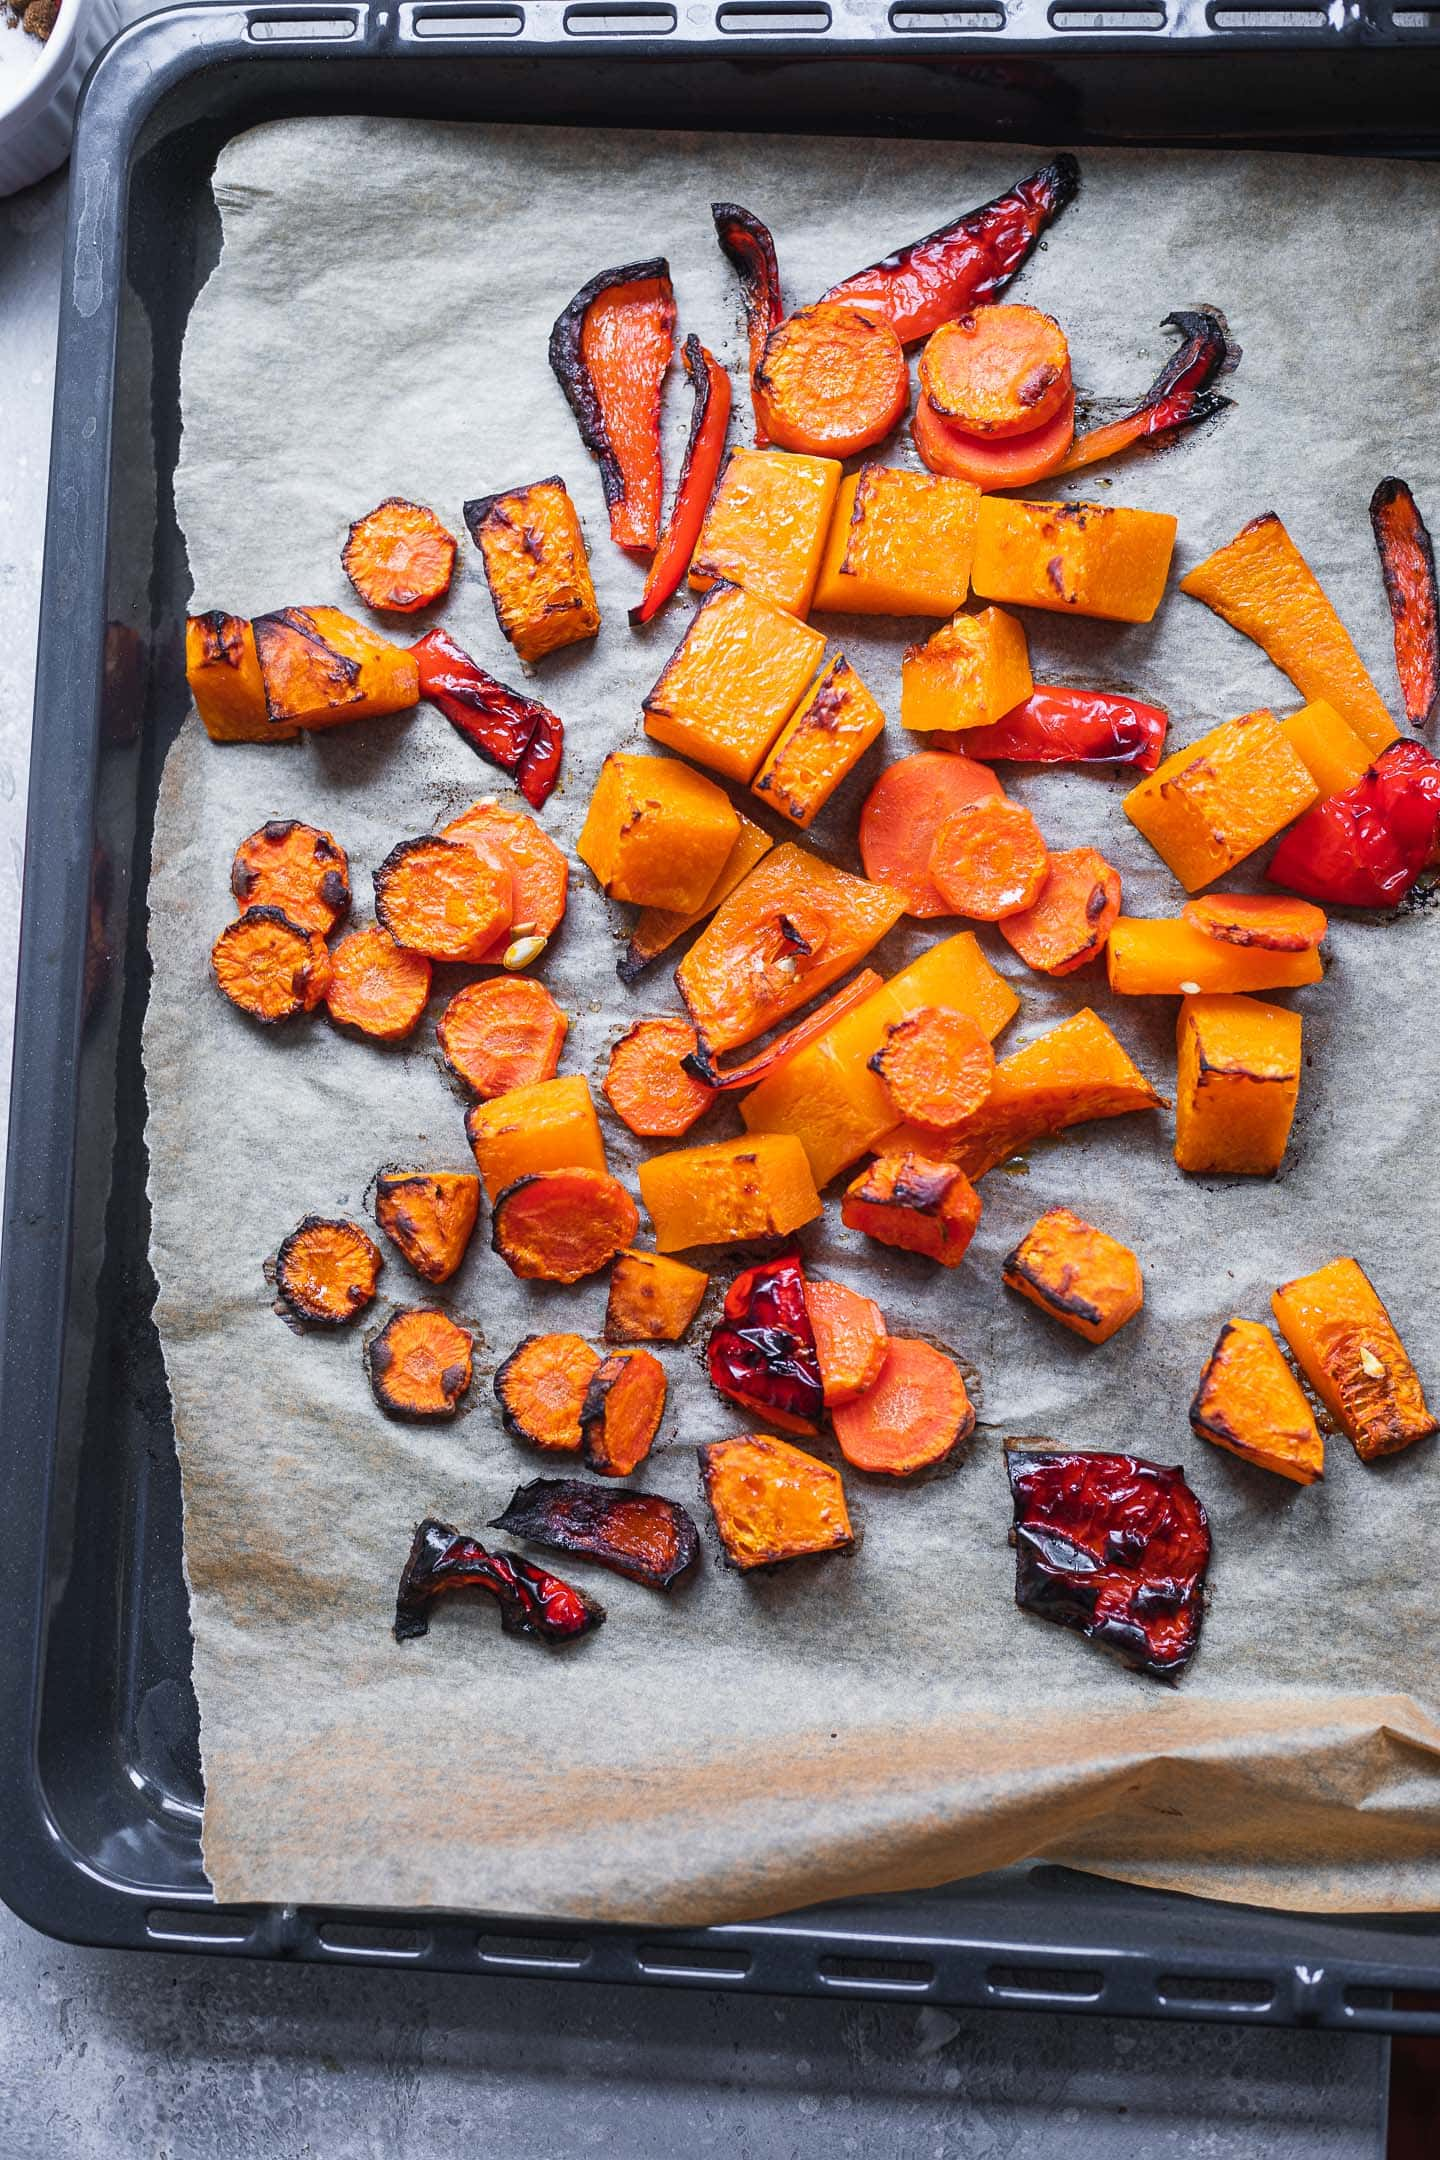 Roasted butternut squash, carrots and bell pepper on a baking tray